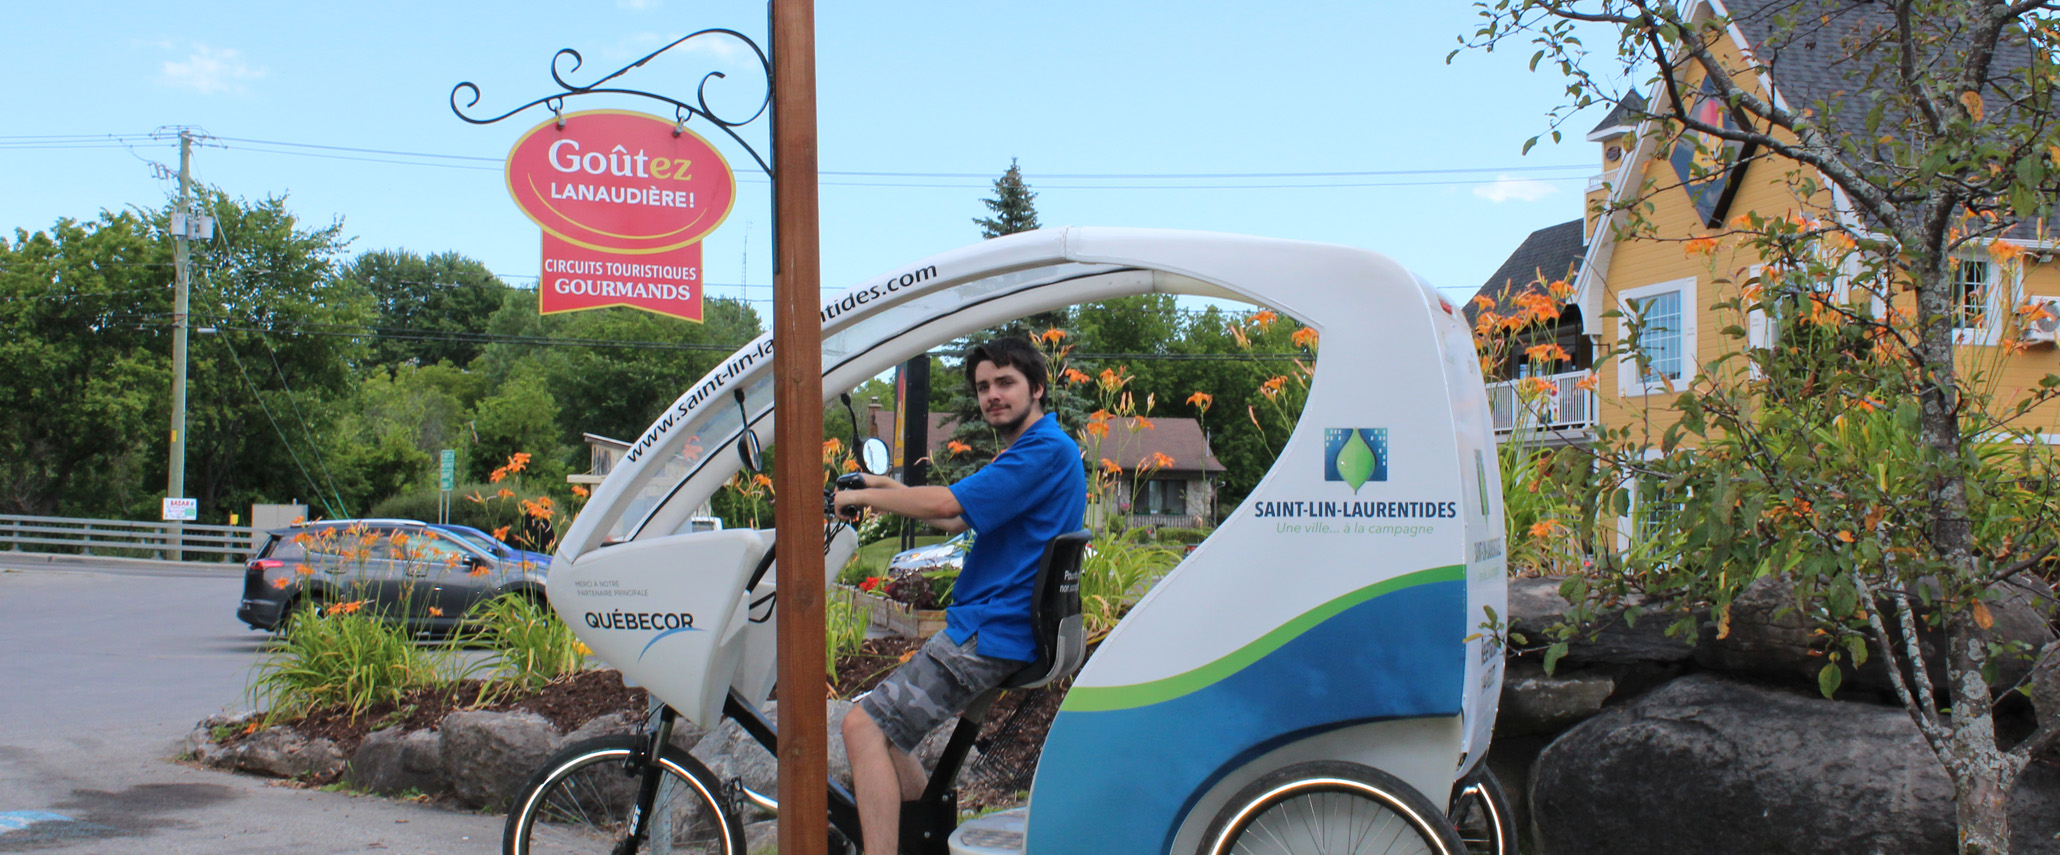 tourist-circuit-saint-lin-laurentides-city-scooter